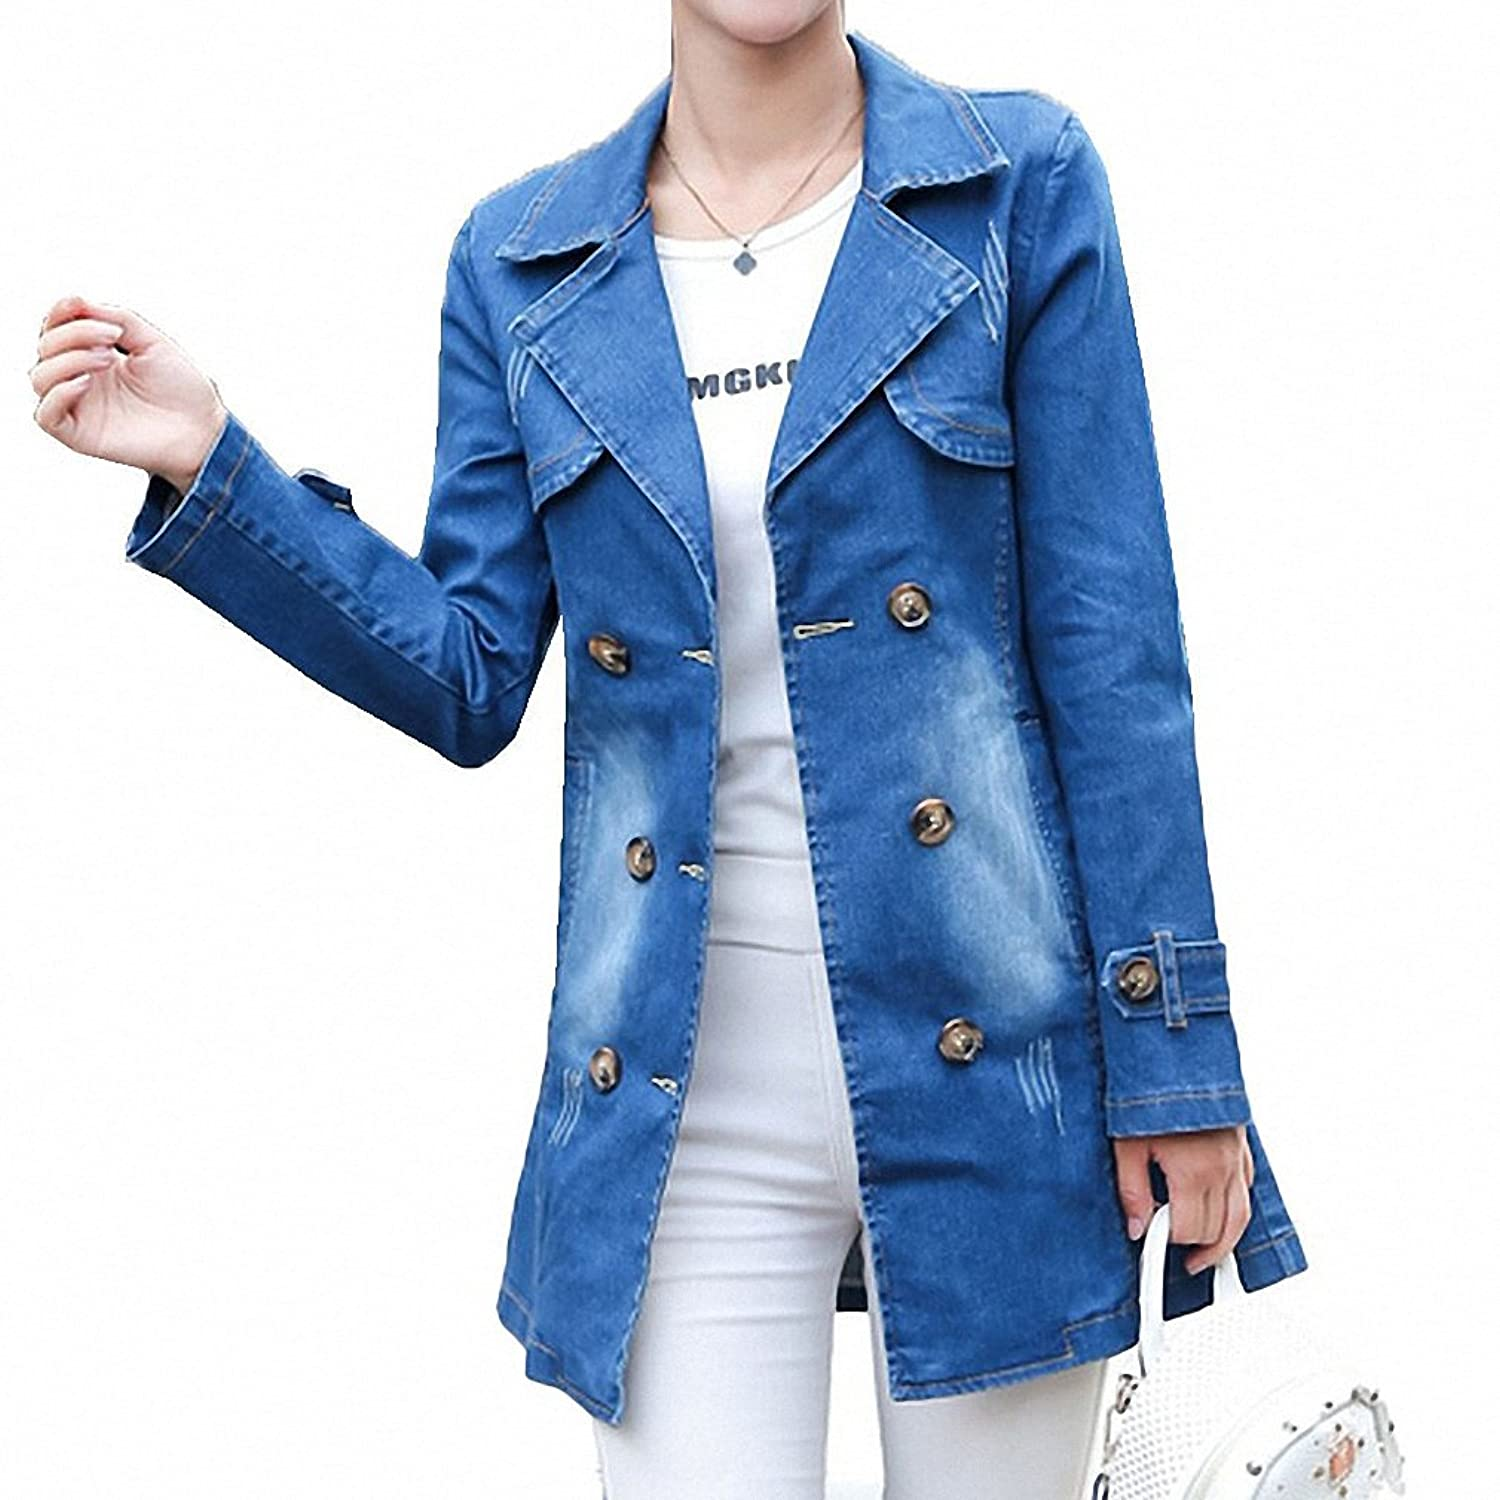 Large Size Denim Jackets For Women Loose Chaqueta Mujer Long Sleeve Jean Jacket Famele Slim Lace-Up Jaqueta Feminina at Amazon Womens Coats Shop